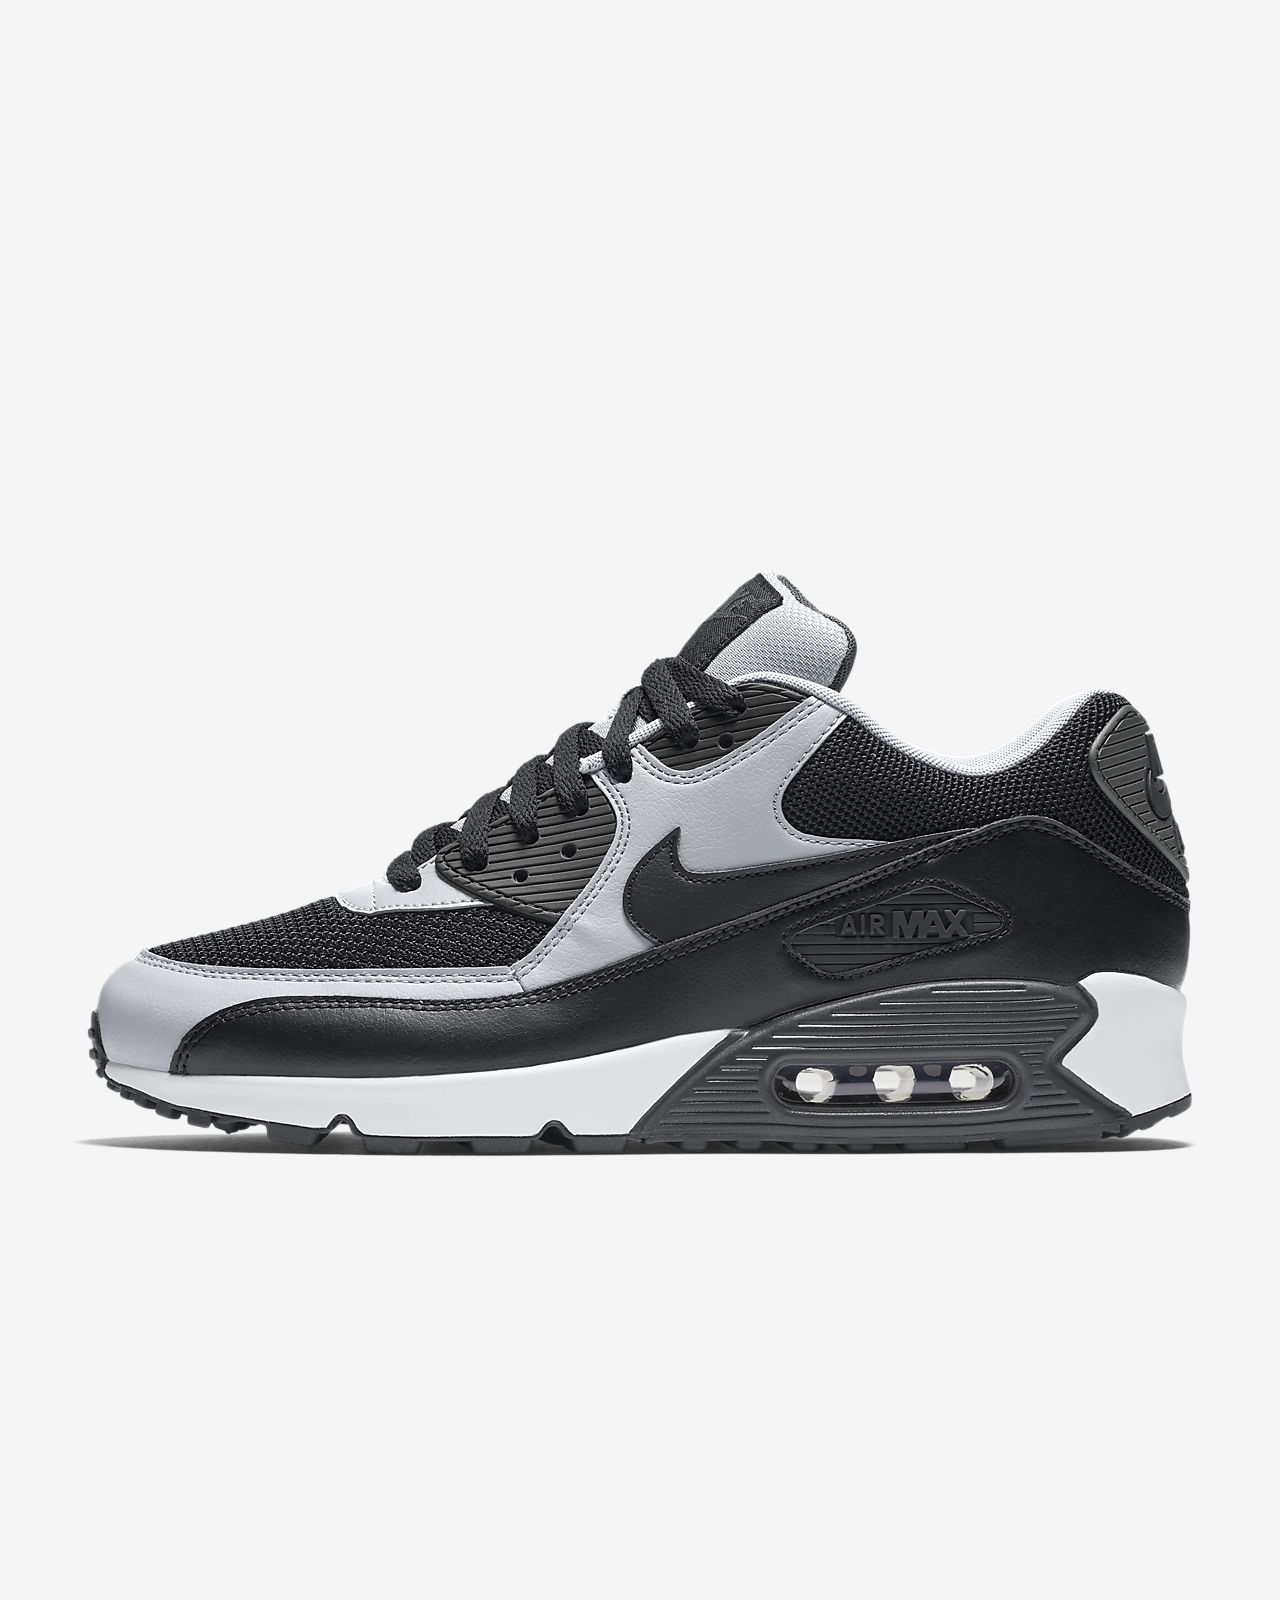 1efde9fffb521 Nike Air Max 90 Essential Men's Shoe. Nike.com AT